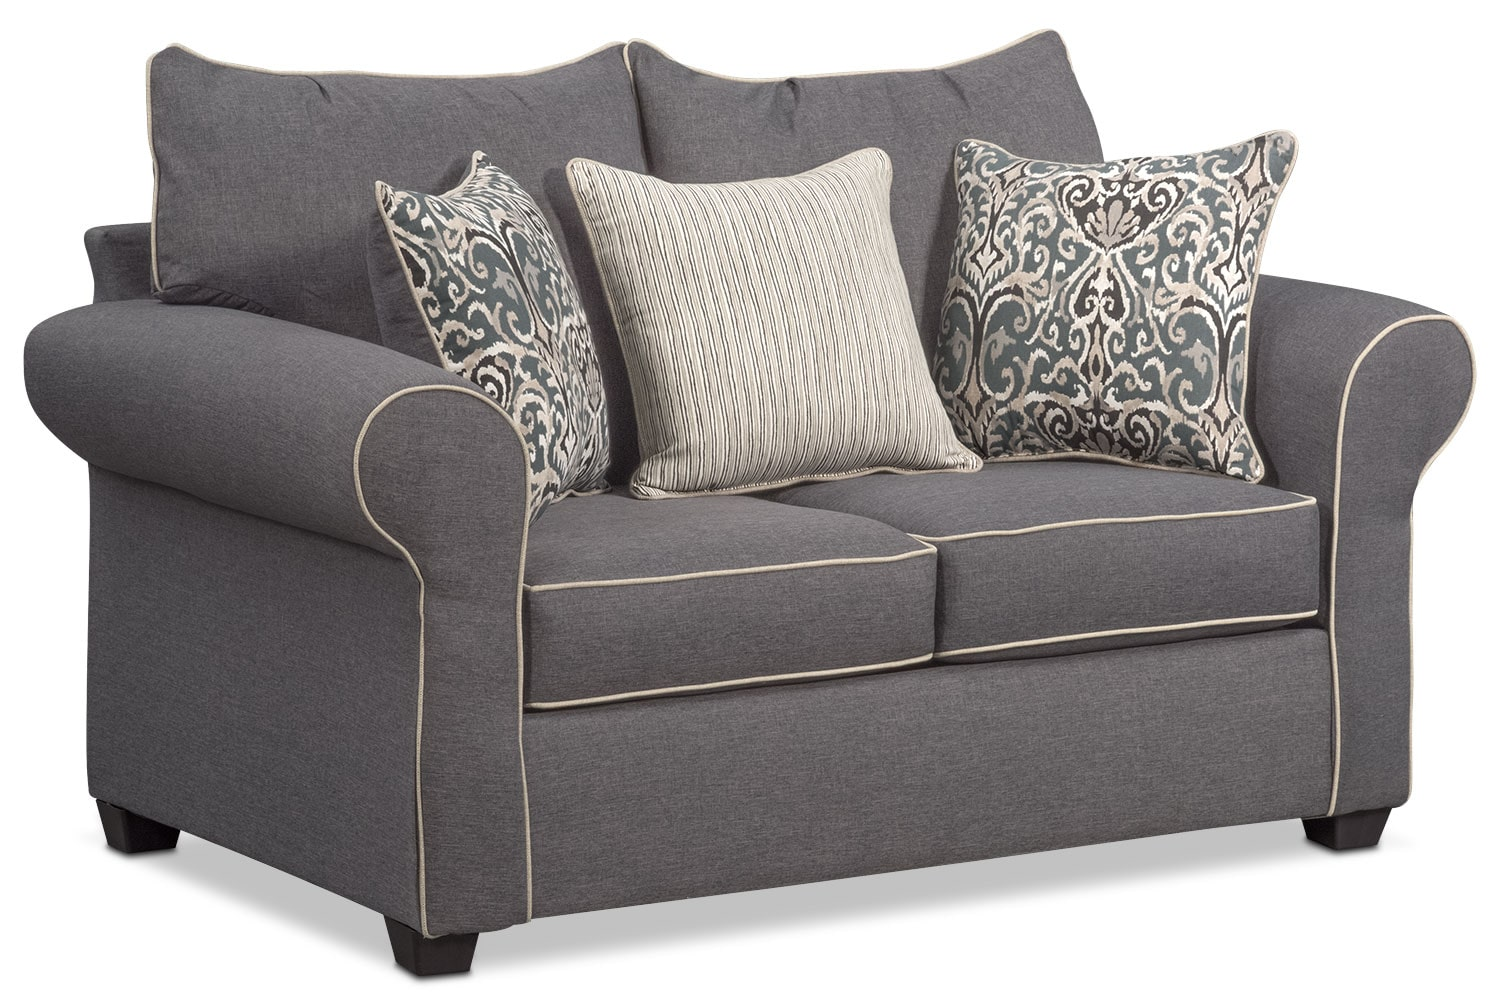 Carla Queen Innerspring Sleeper Sofa Loveseat And Accent